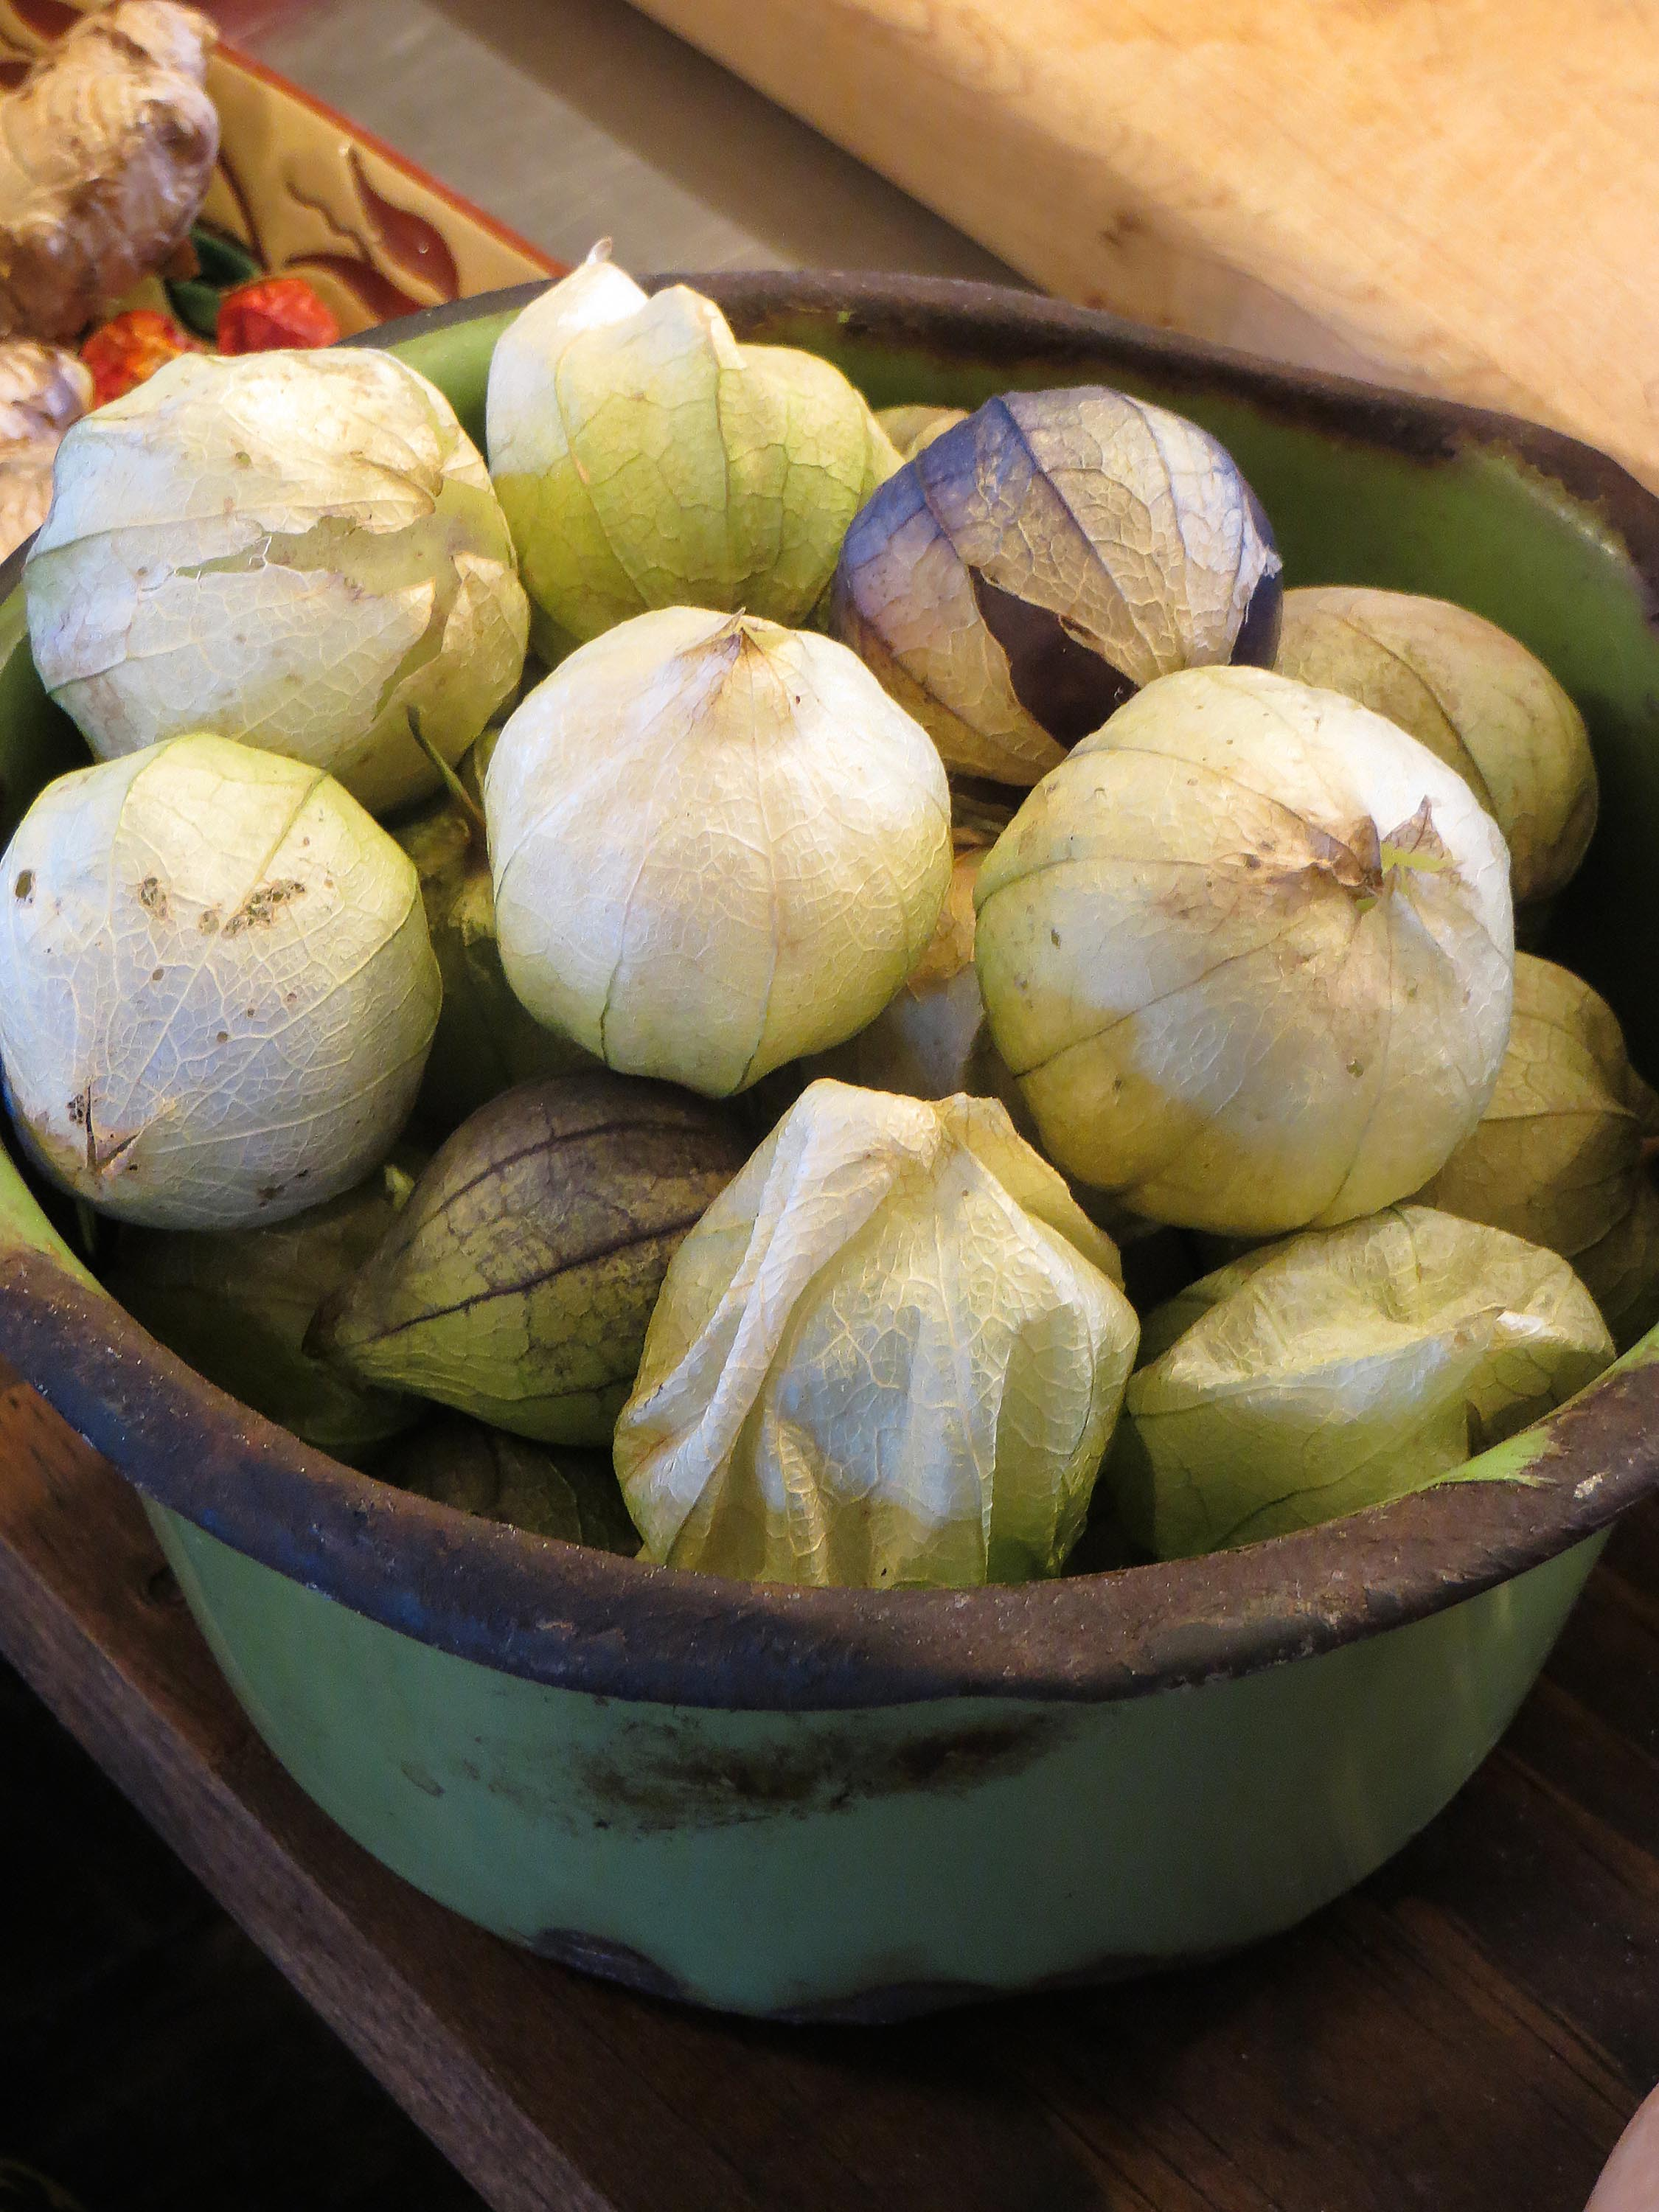 tomatillos from the garden